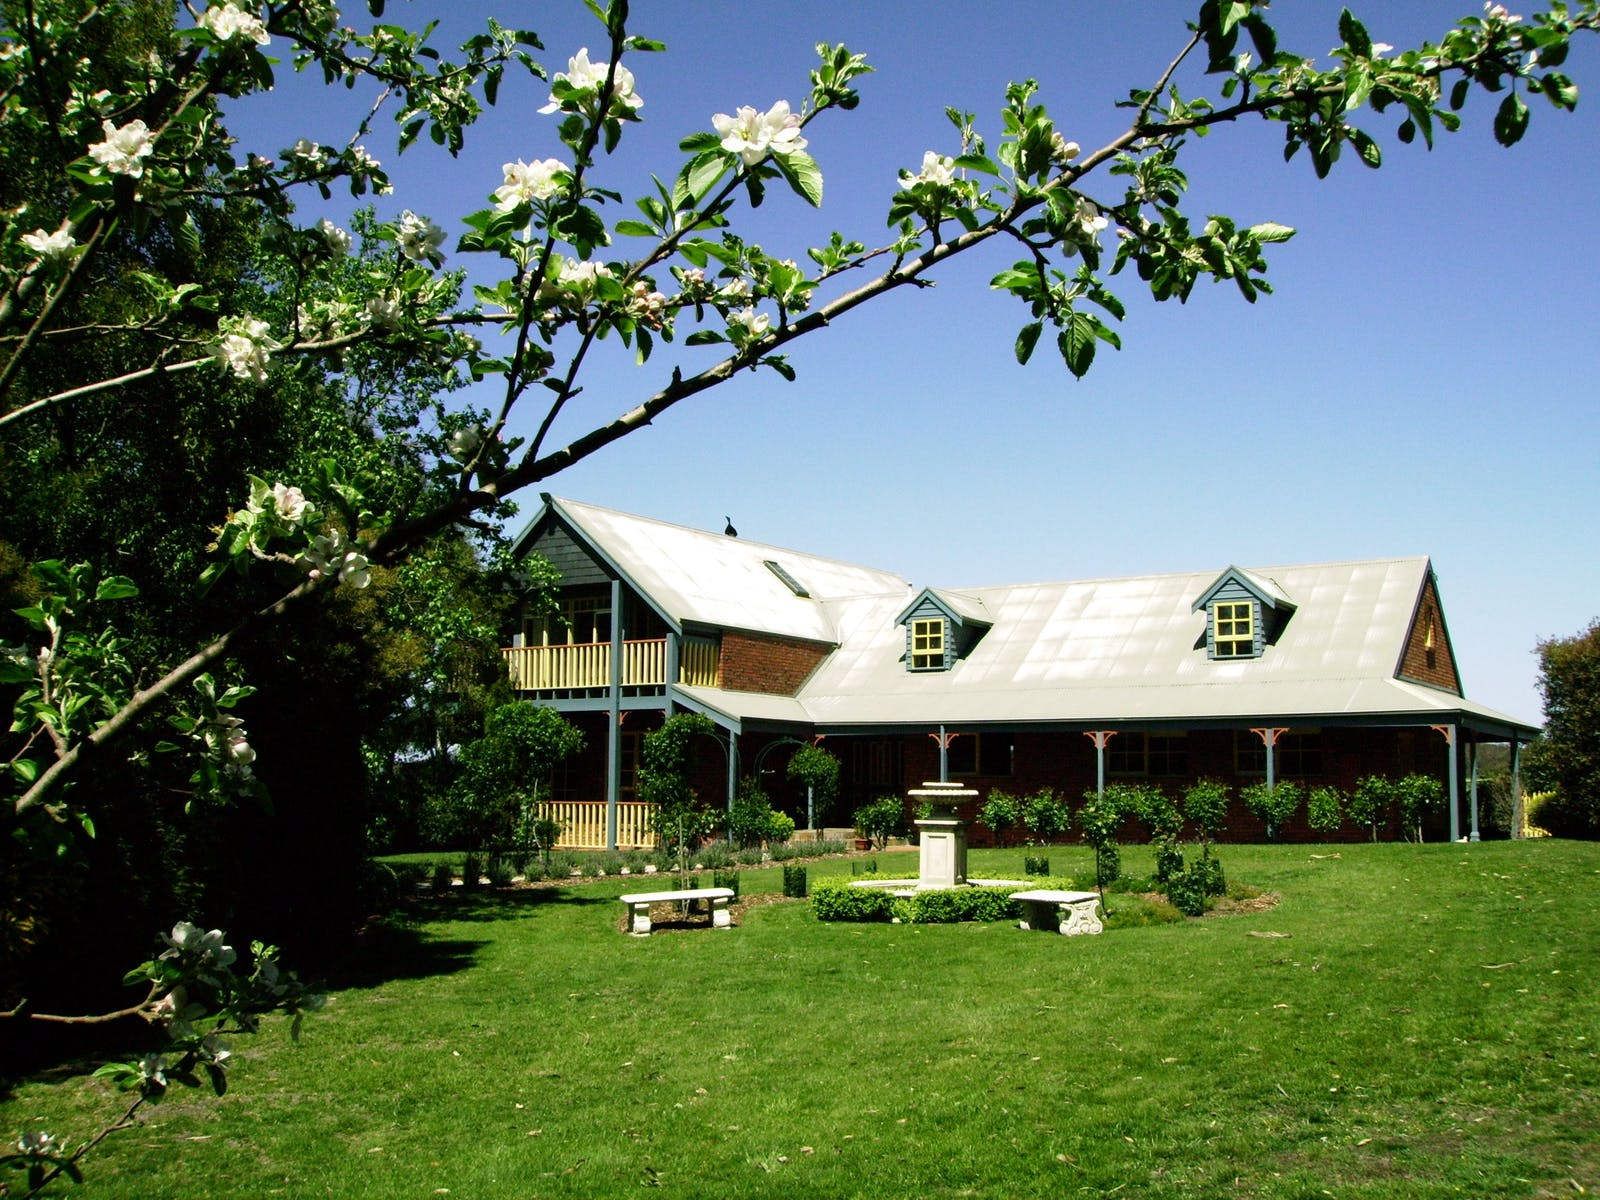 The lodge and garden surrounds